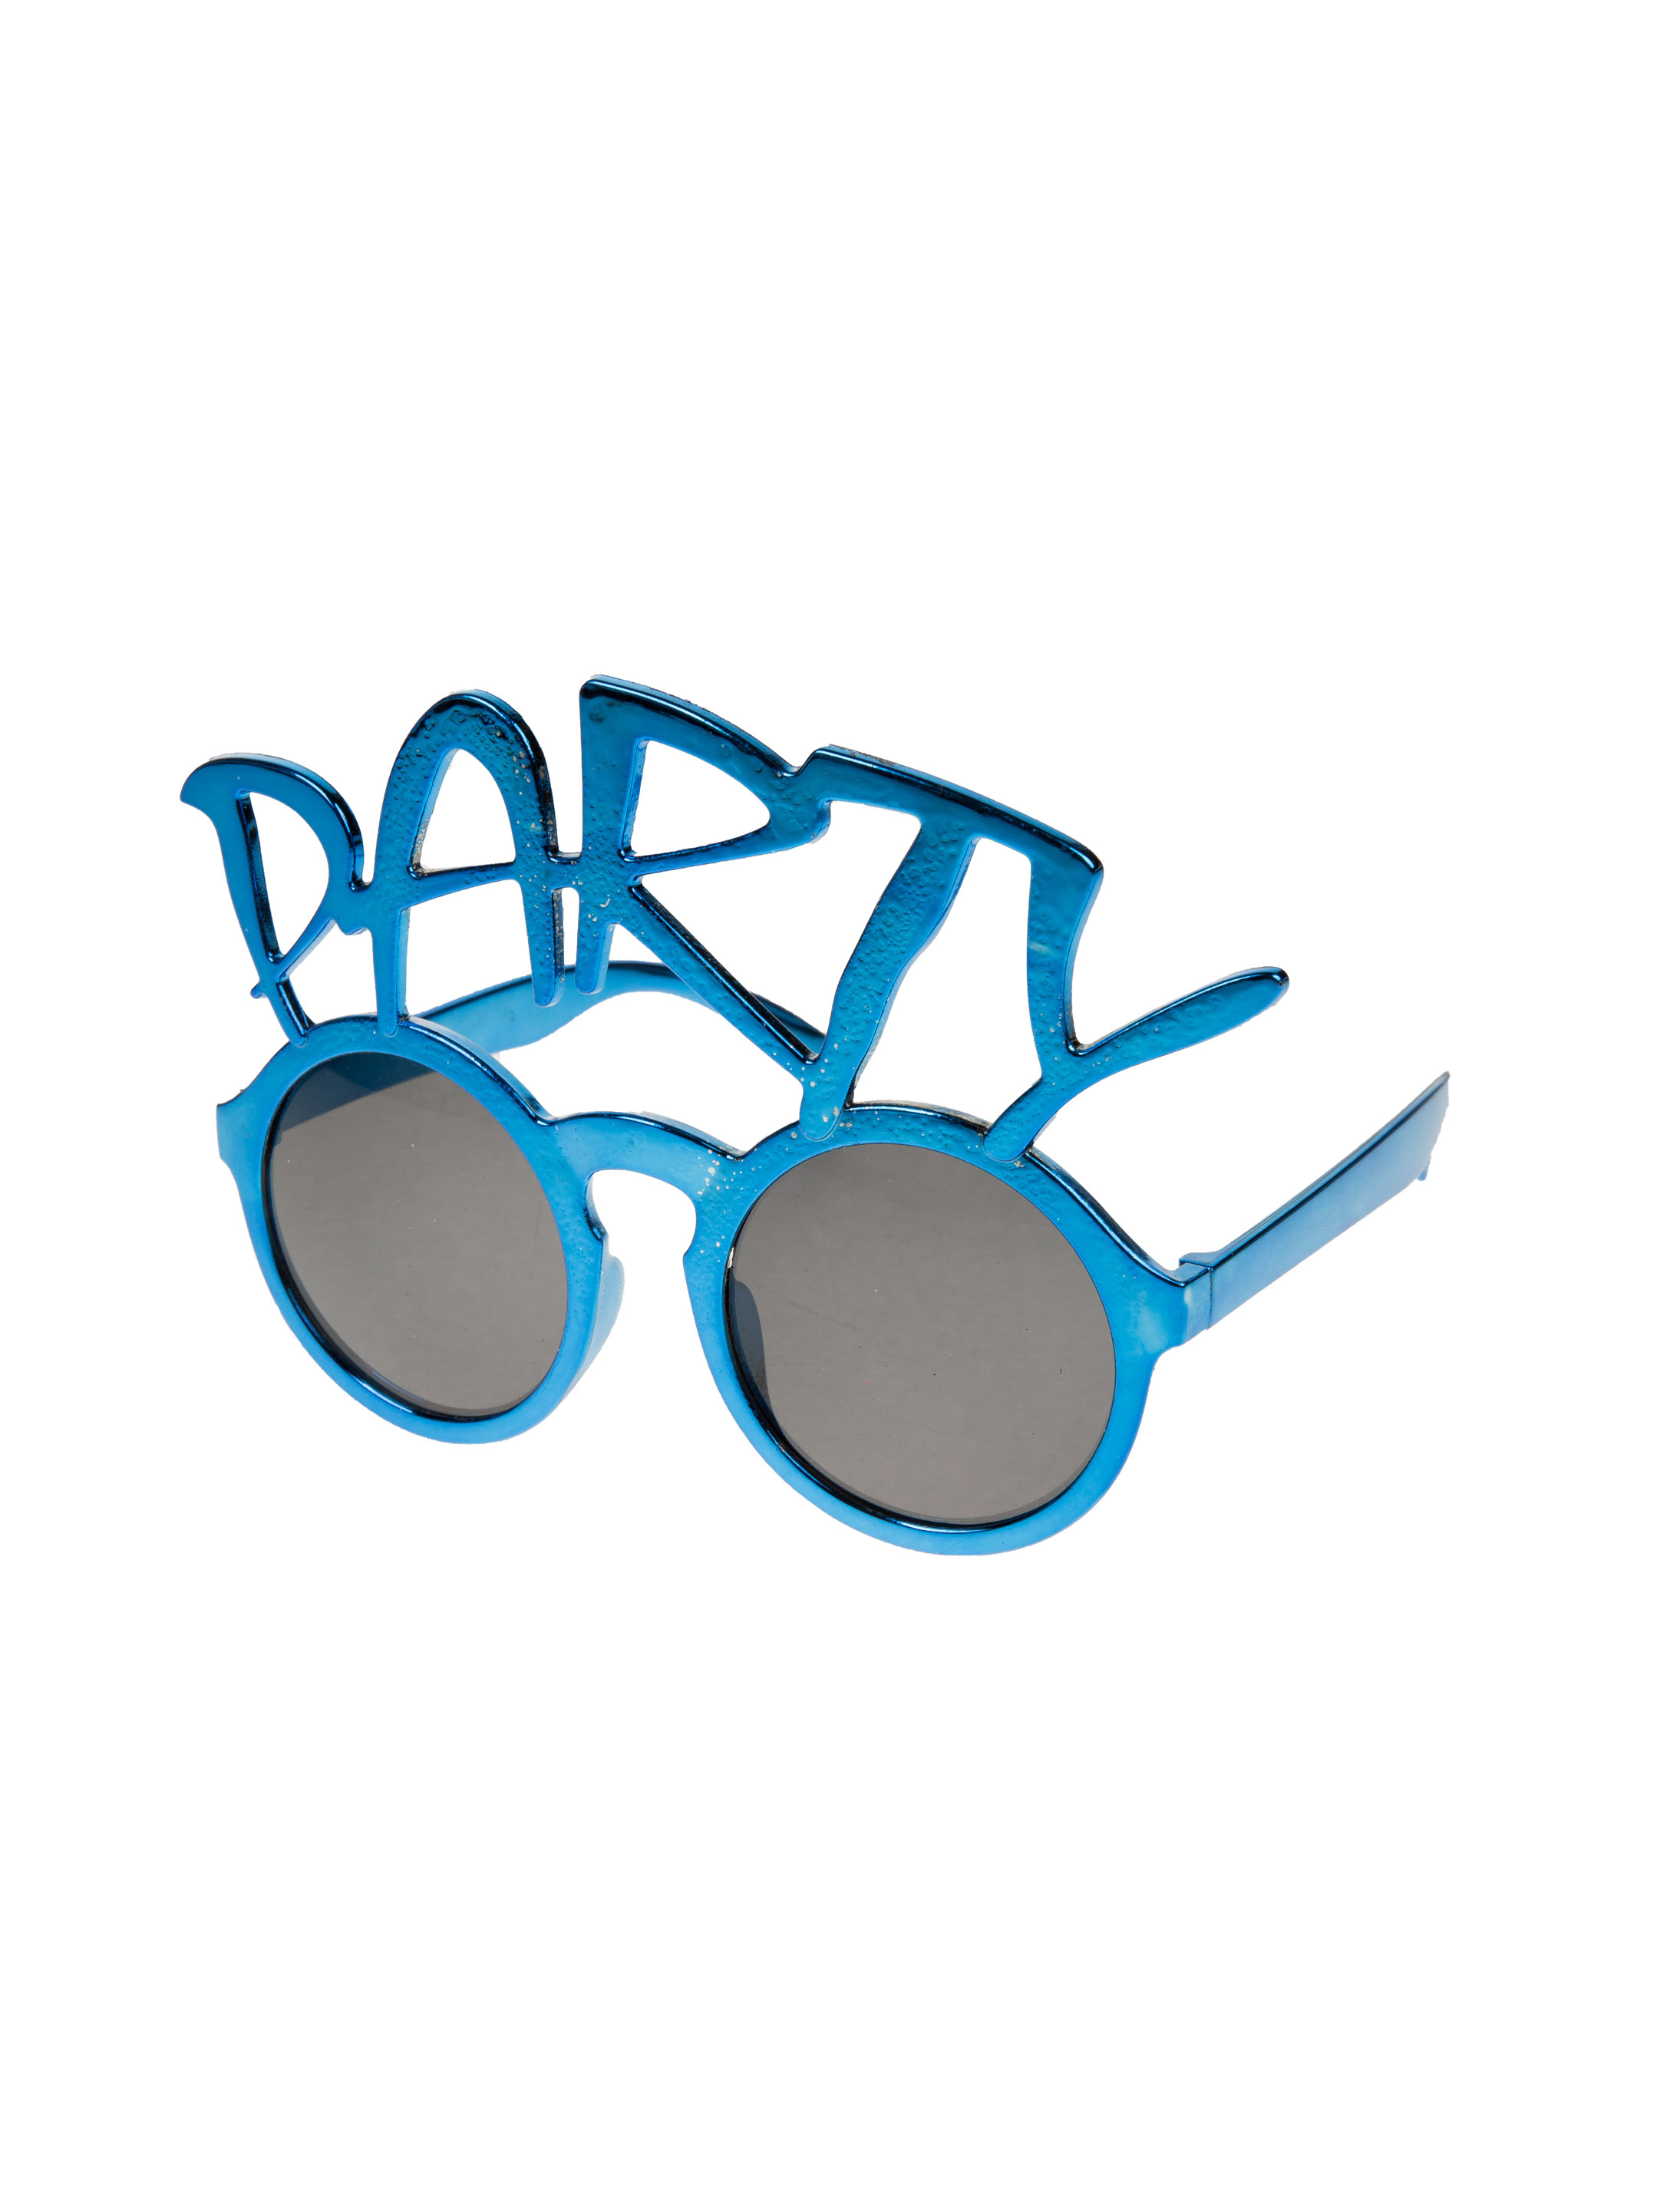 Kostuemzubehor Brille Party blau